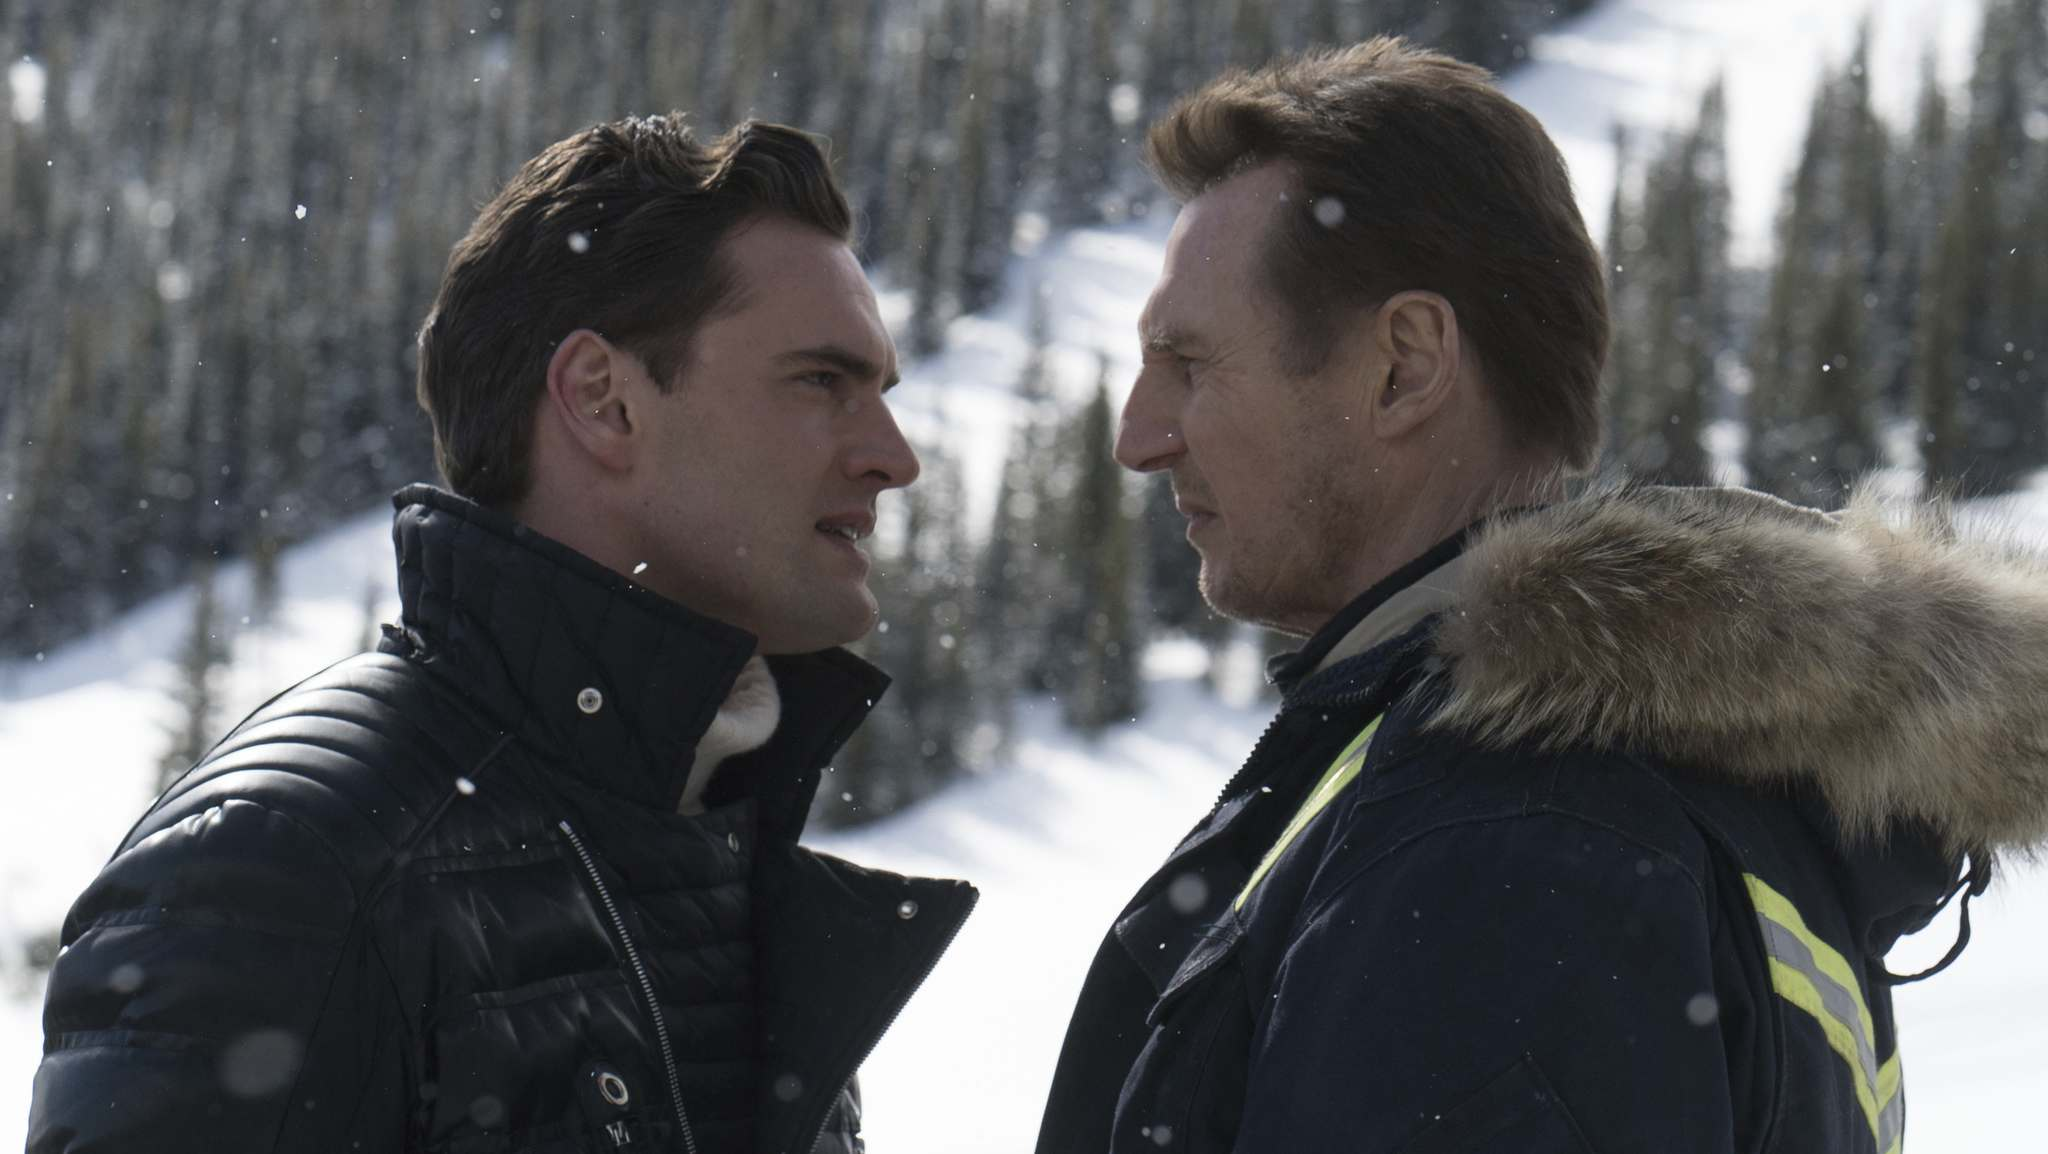 Actors Tom Bateman and Liam Neeson (right) star in the film Cold Pursuit.